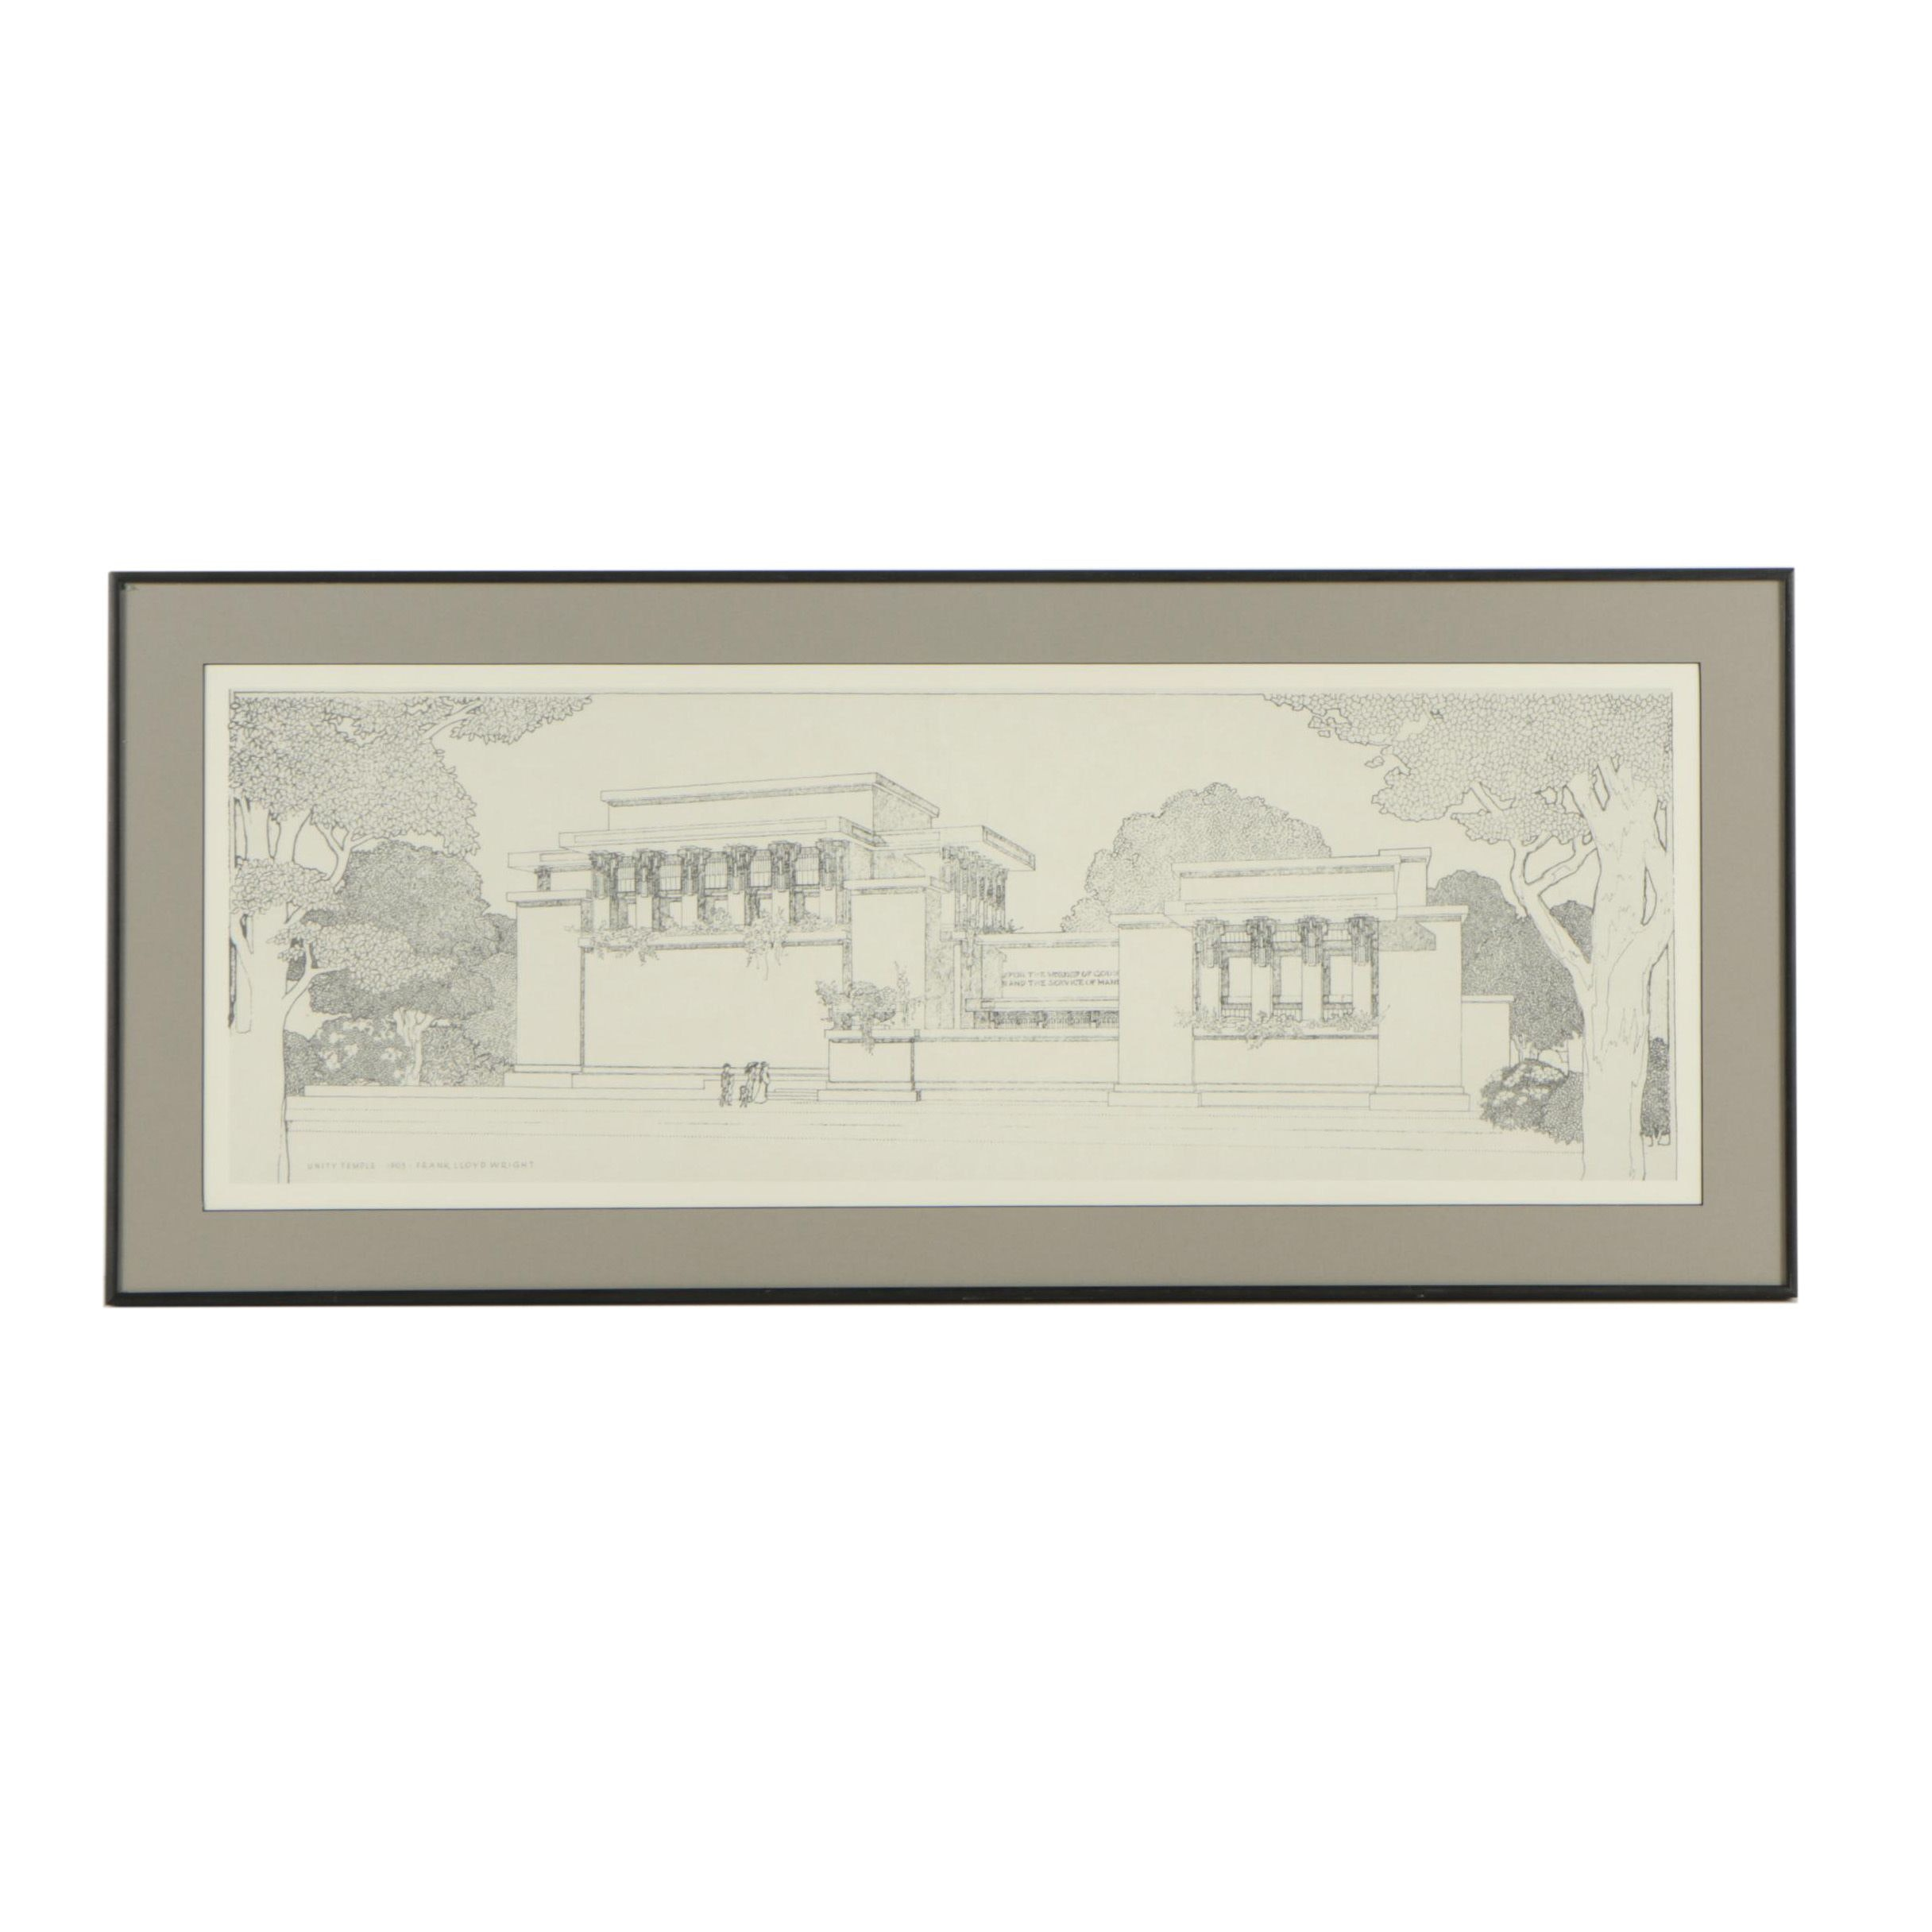 Offset Lithographic Reproduction Print of Unity Temple After Frank Lloyd Wright